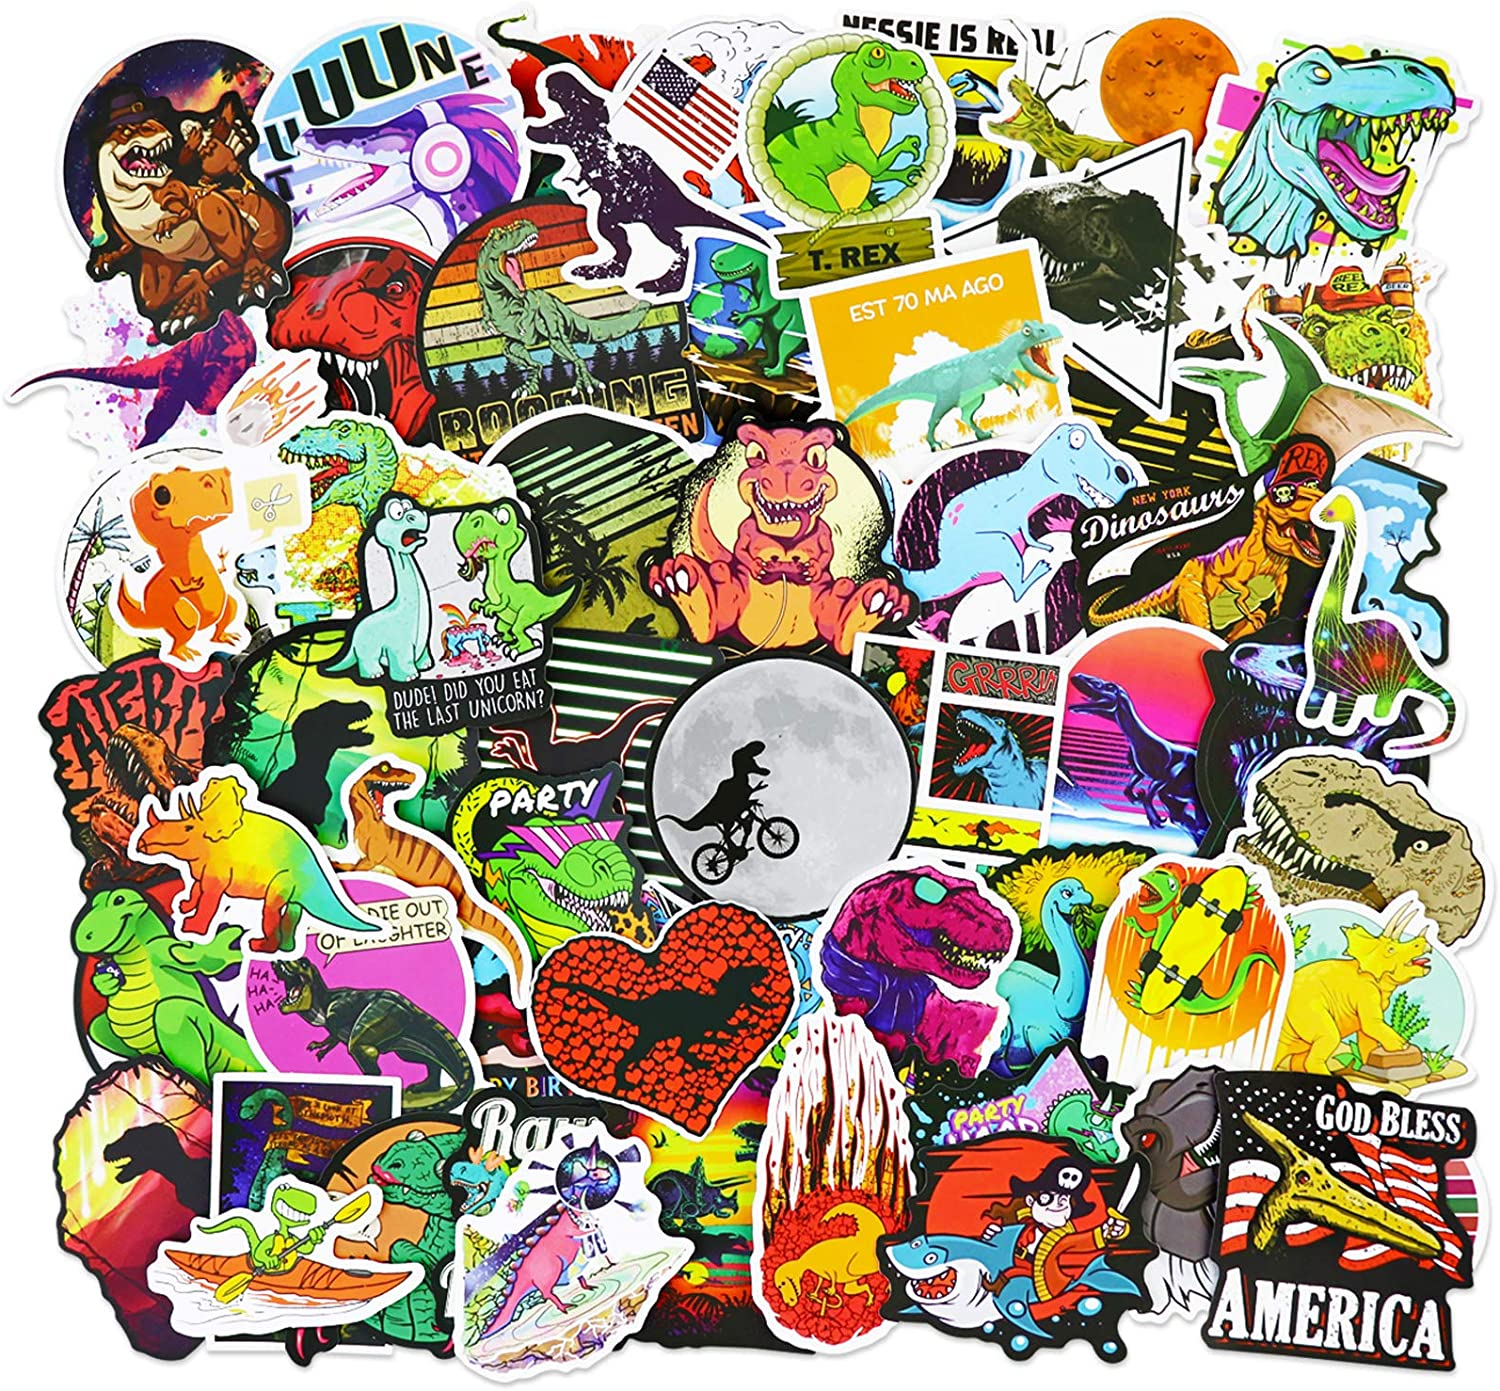 Dinosaur Park Stickers Waterproof Decals for Water Bottle, Laptops, Bike, Skateboard, Party Supplies, 100pcs Per Pack